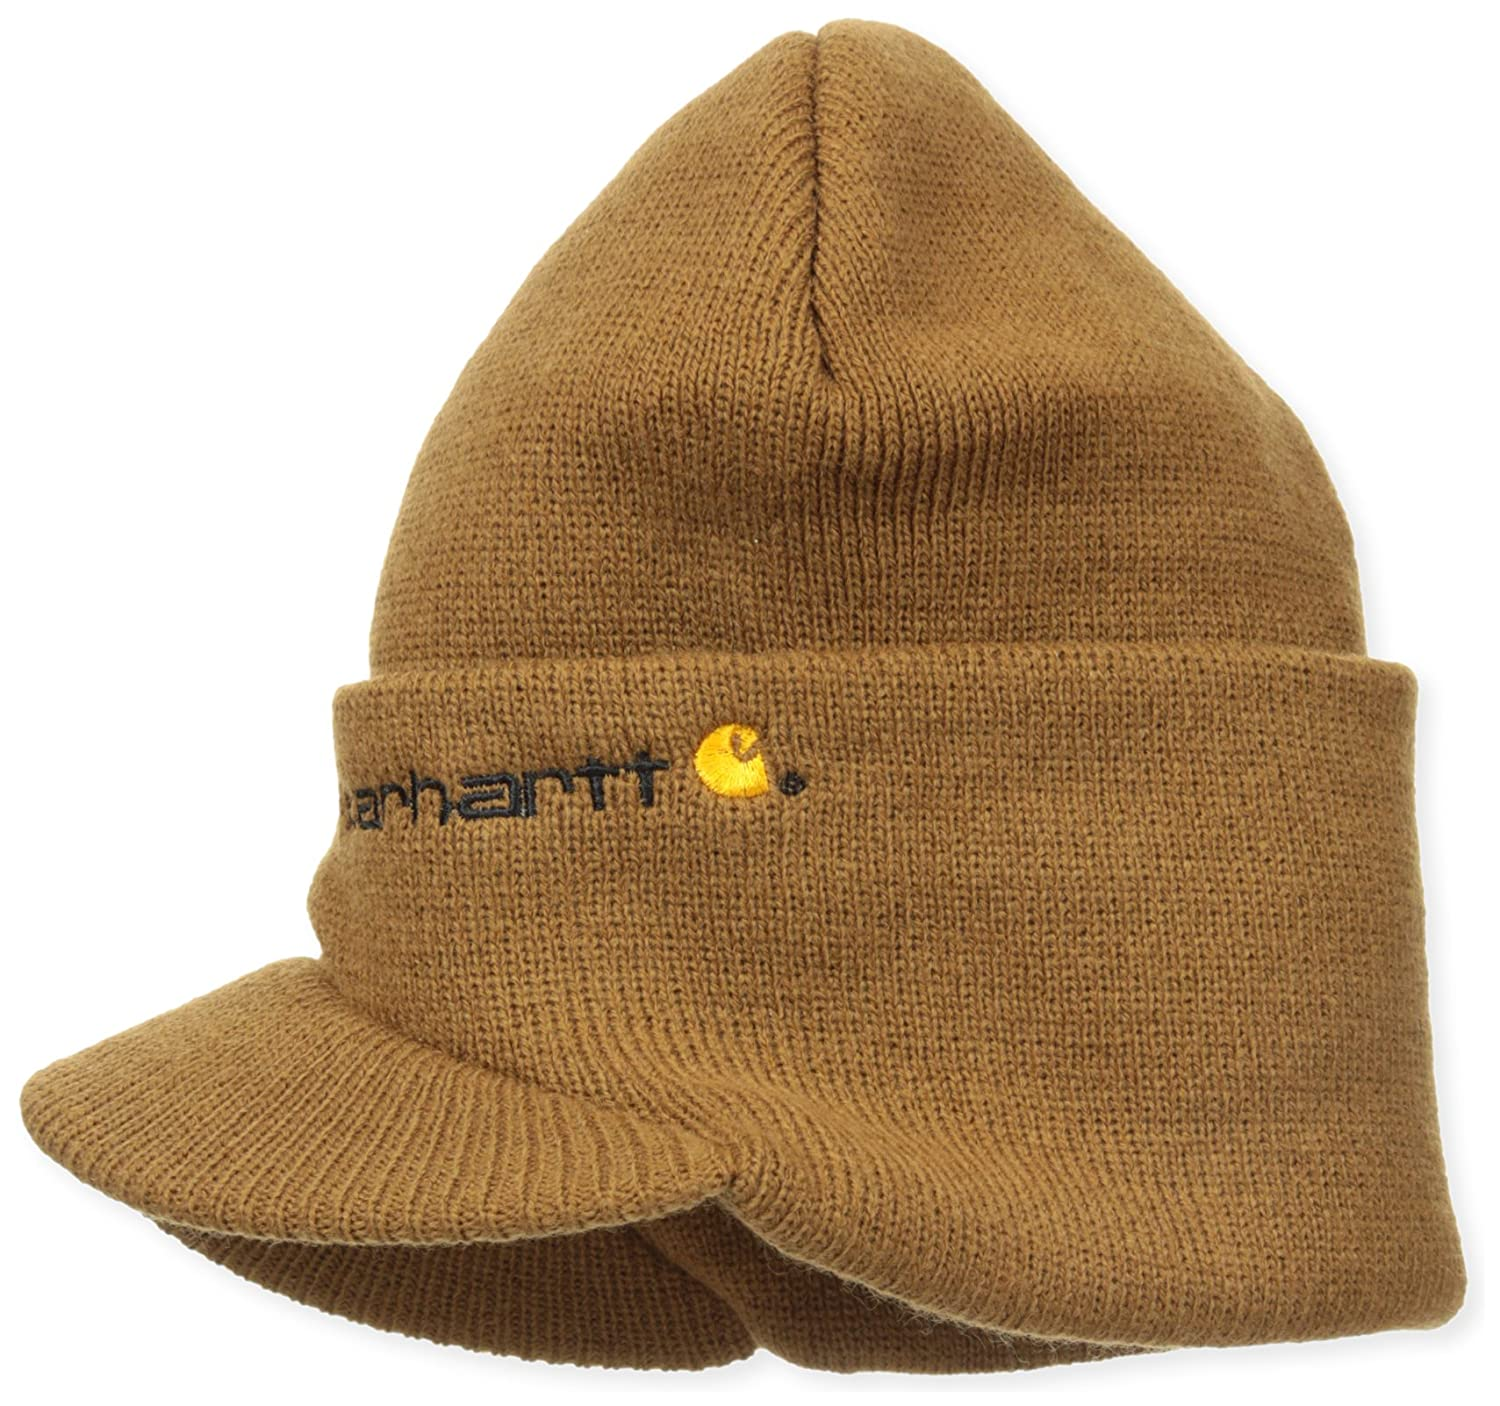 Carhartt Men s Knit Hat With Visor at Amazon Men s Clothing store  Skull  Caps a8201504c837